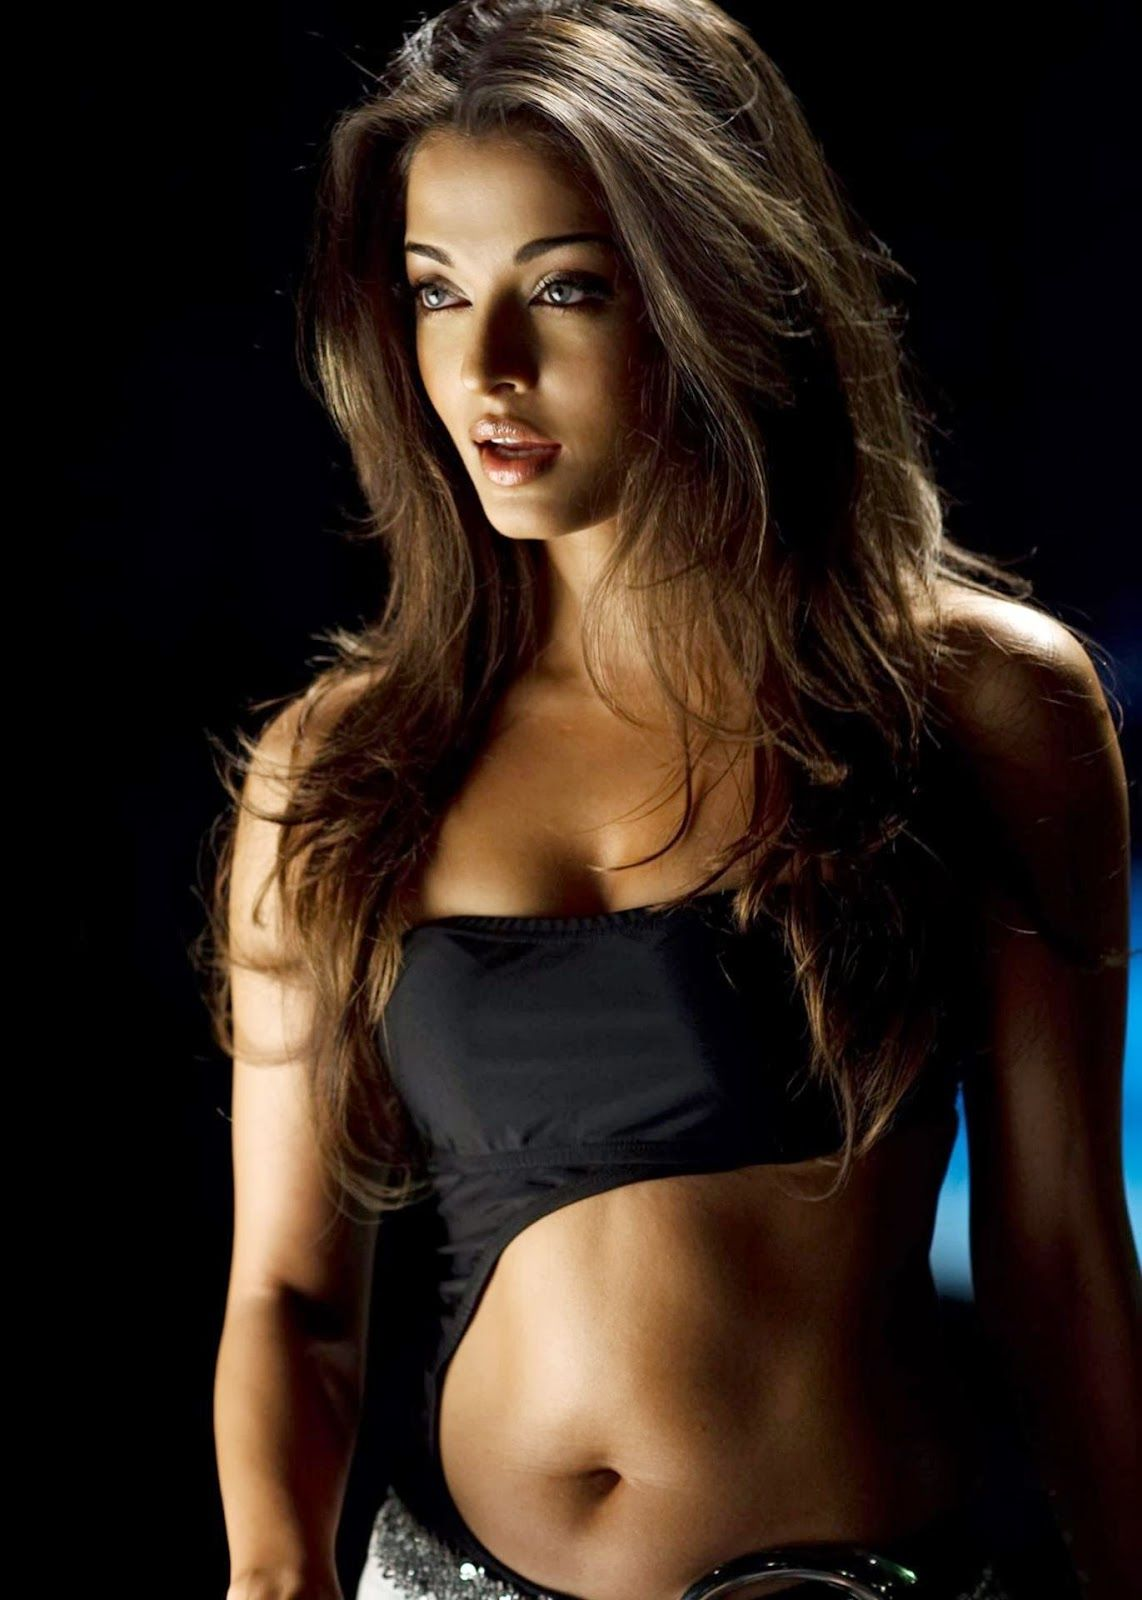 Hot Navel Pics Of Aishwarya Rai Sexy Bollywood Actresses Shows Their Navel Unmatched Collection Of Aish Hot Navel